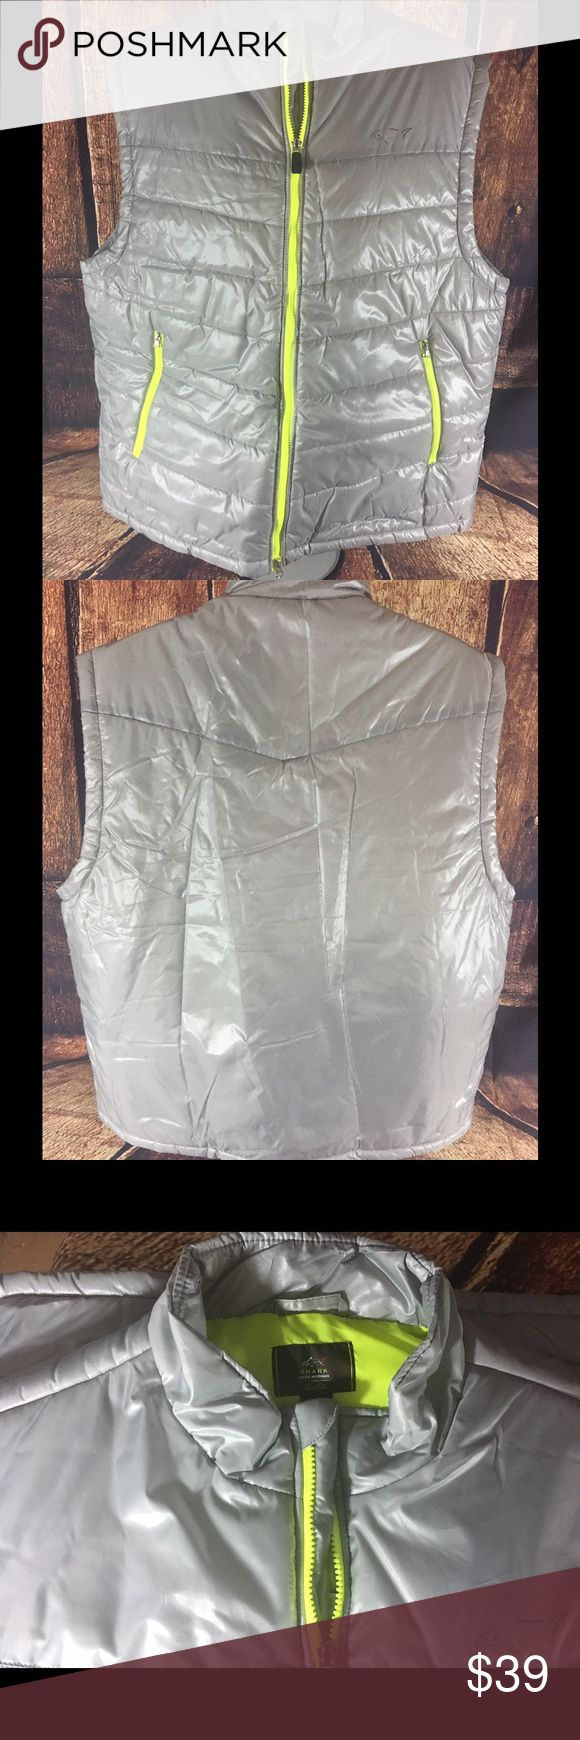 Greg Norman Golf Vest Puffer XXL Shark New This is a new with tags Greg Norman Shark puffer vest. Great for golfing or other outdoor activities. This silver vest features neon golf green trim.  In a Size 2xl. Greg Norman Shark Jackets & Coats Puffers